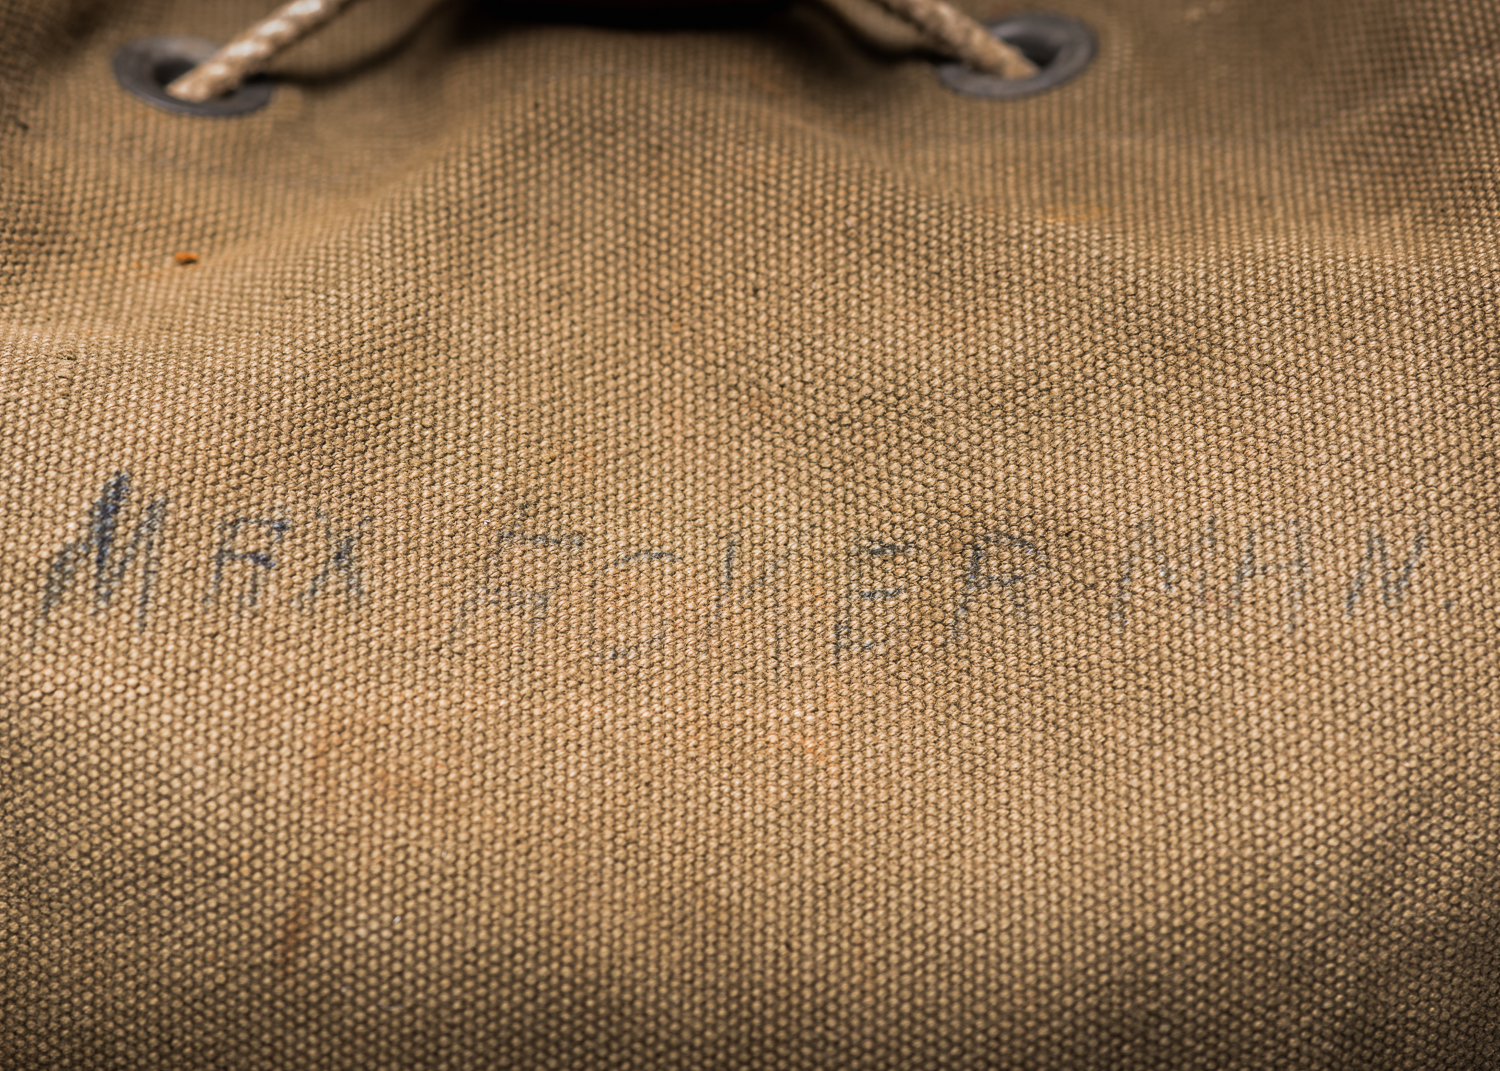 Max's name, Helen Ackerman's son, is inscribed on the fabric. (Poto: Peter Berra)